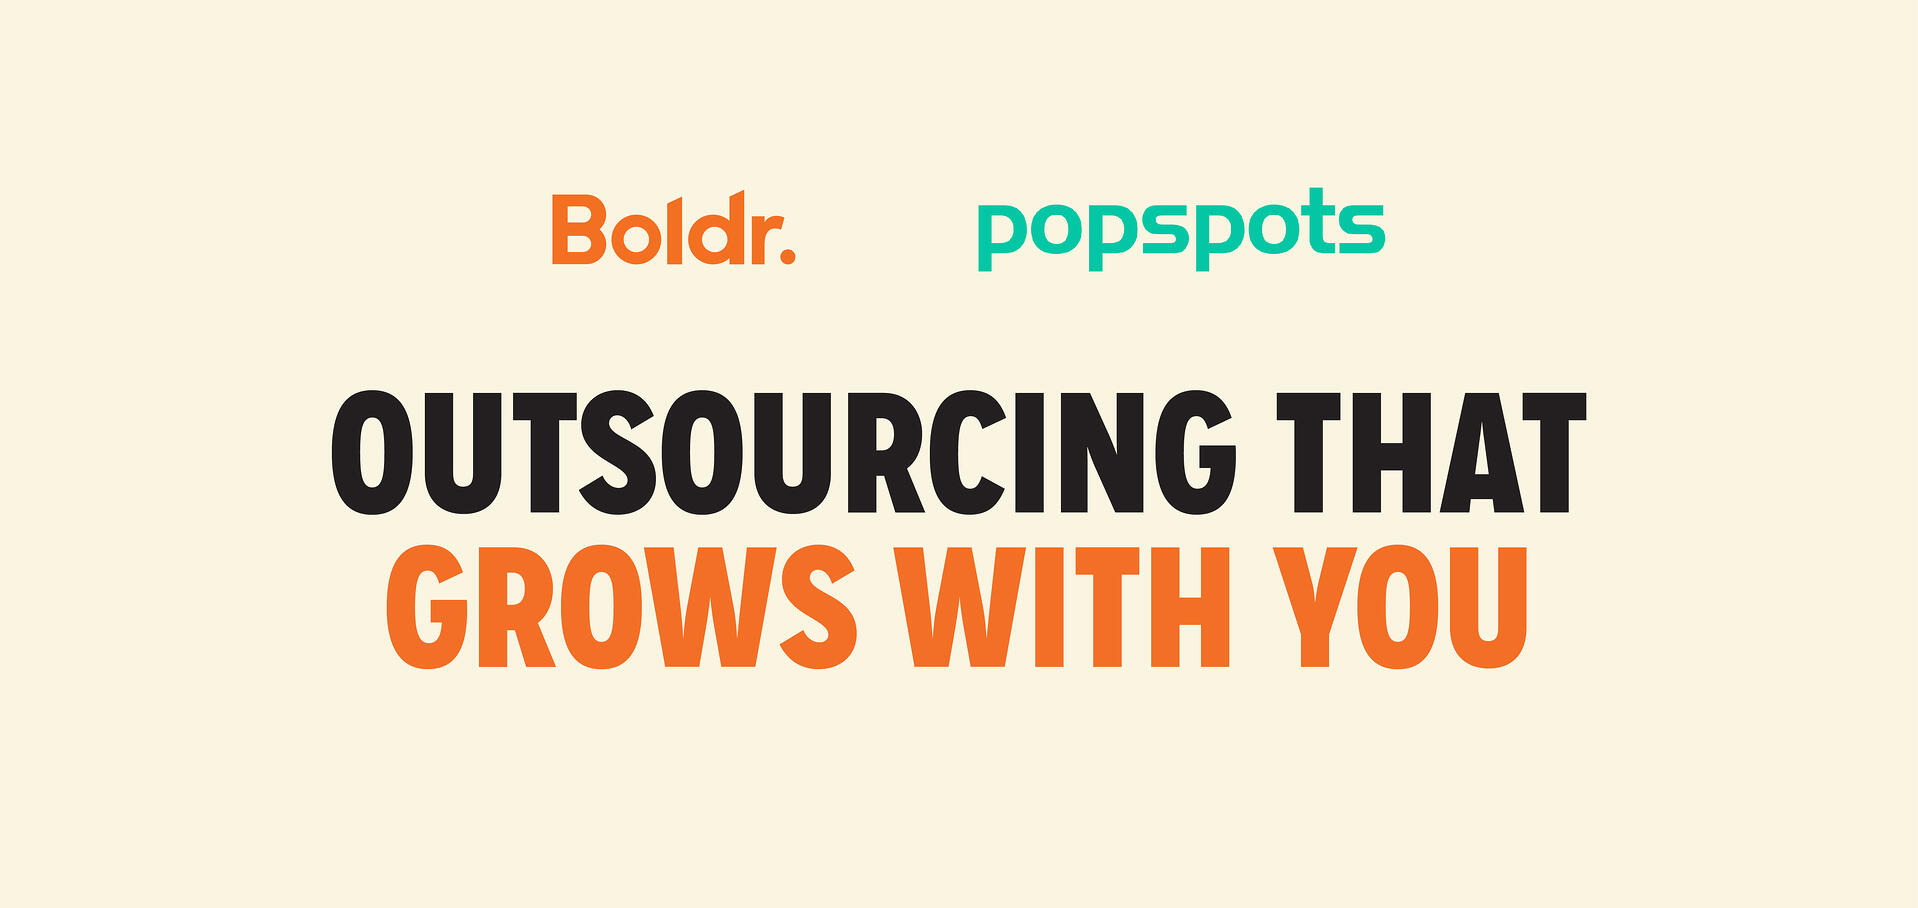 Client Story: Popspots—Outsourcing That Grows With You